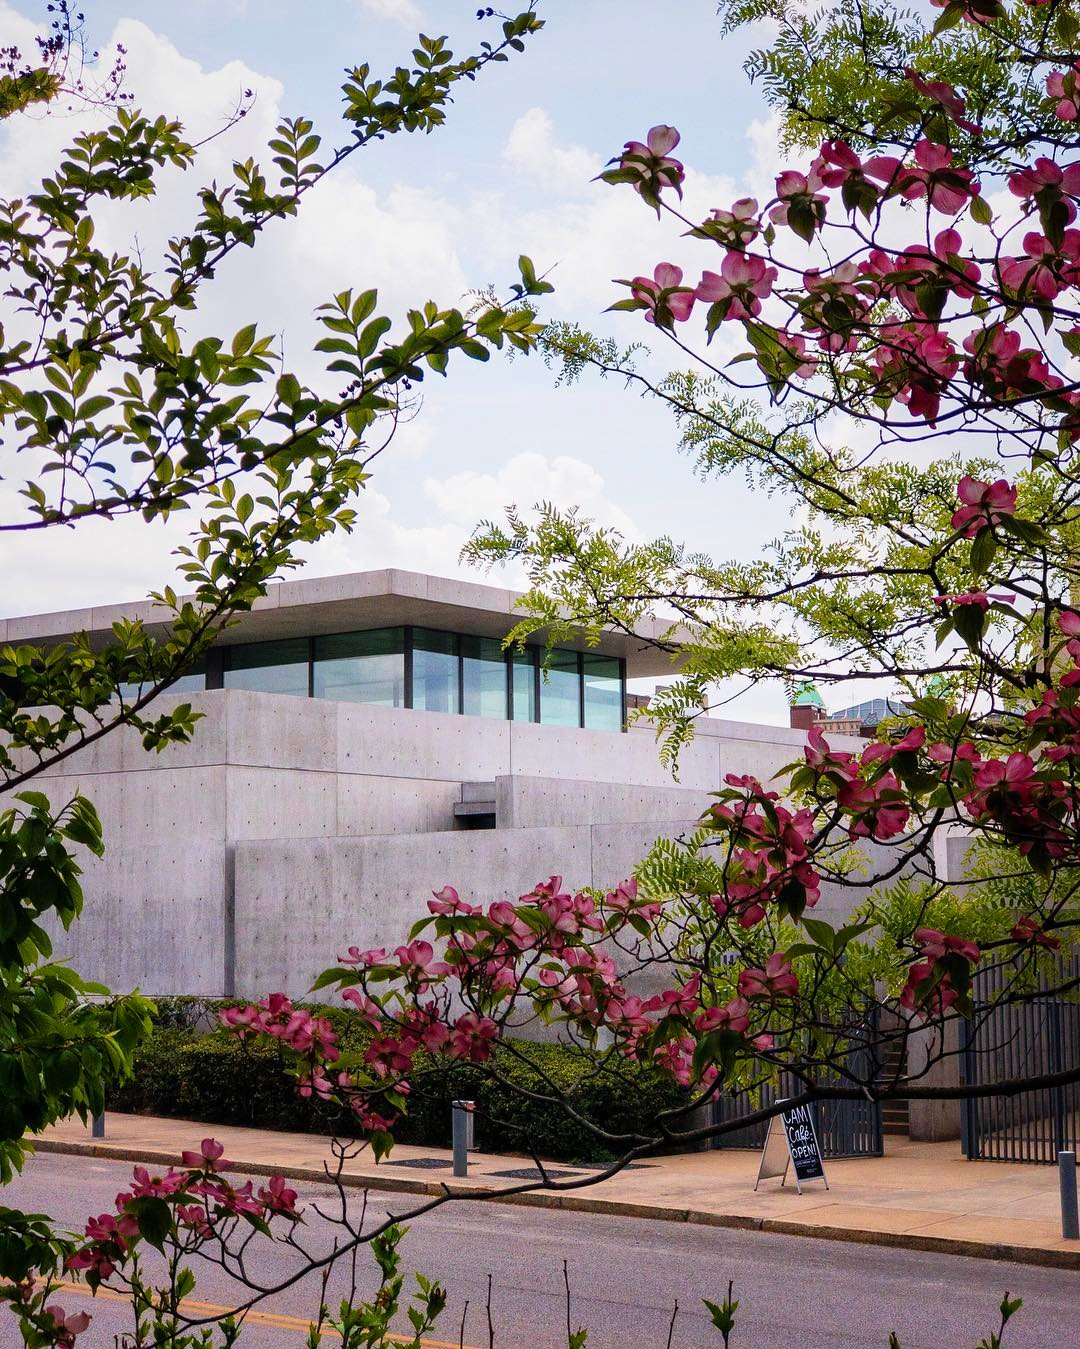 Pulitzer Arts Foundation Instagram username